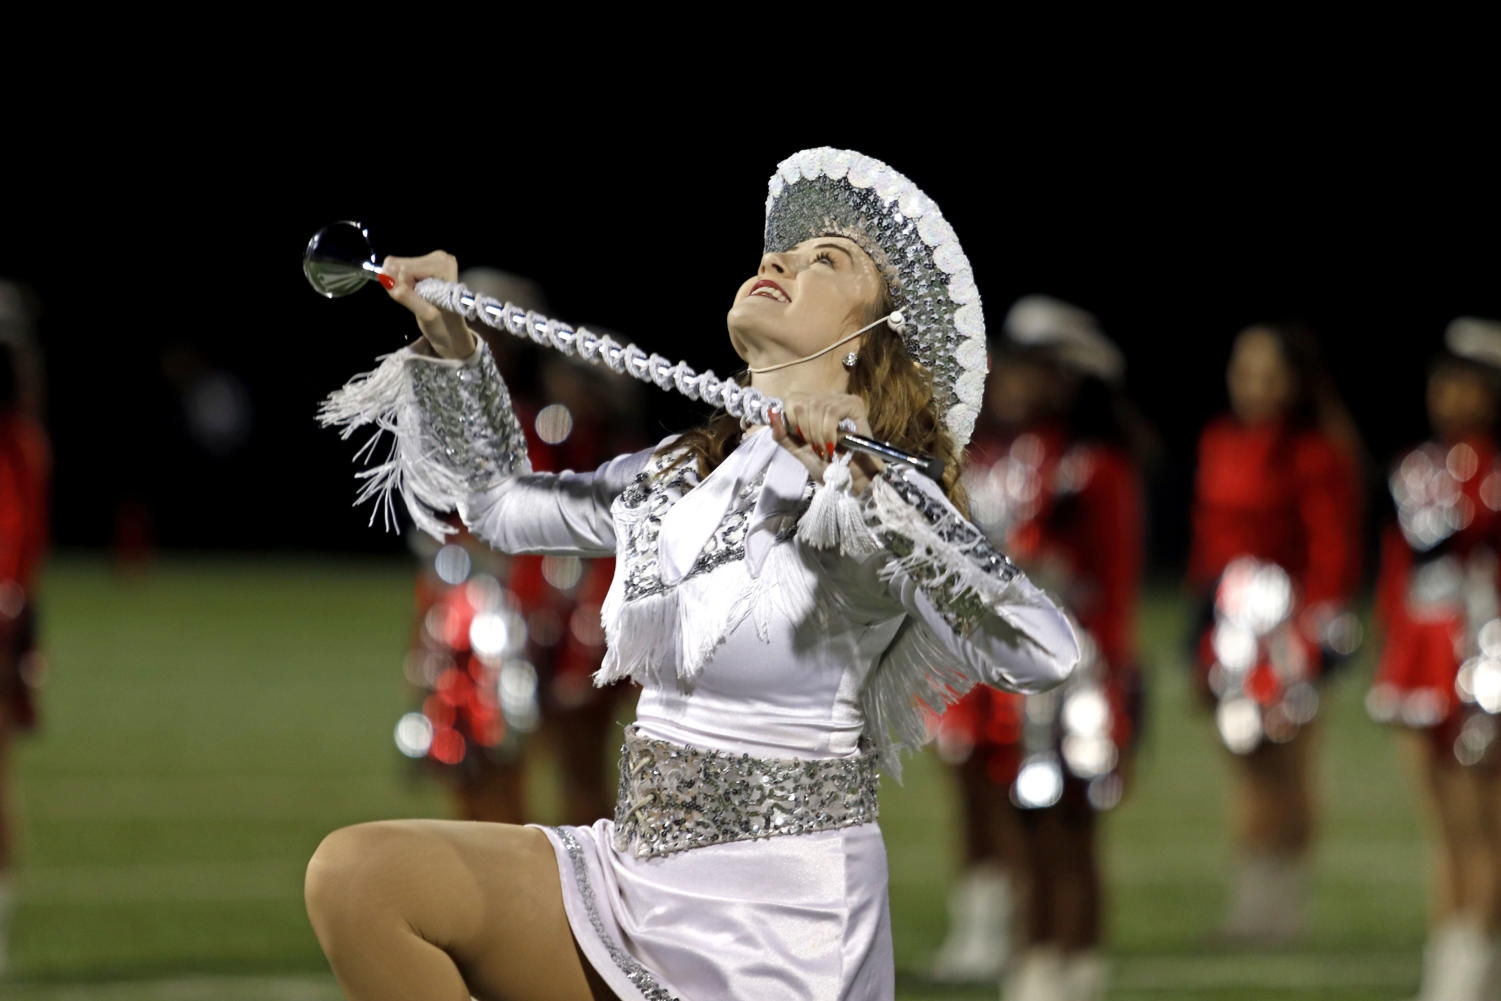 Ashton Williams preforms during halftime at the red out game against the Samuell Spartans.